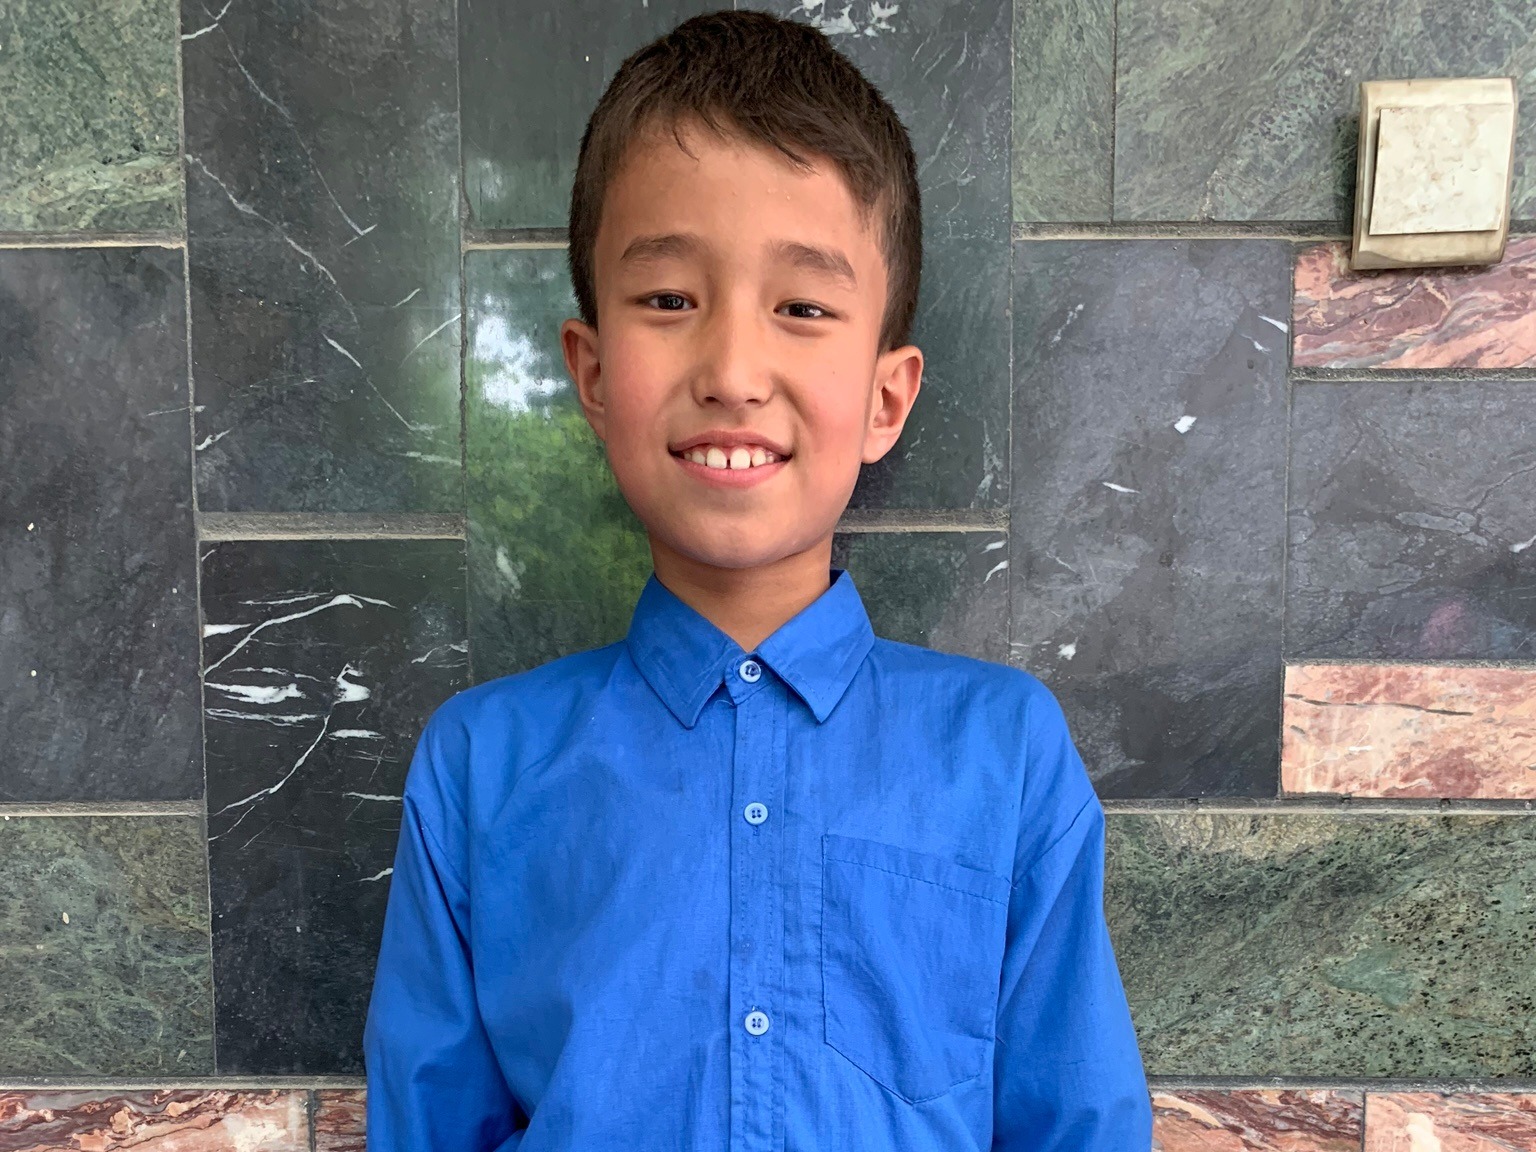 Abdul Faizal, Age 10 - Abdul Faizal has 2 siblings. His mother is unemployed and his father is a tailor.BE ABDUL FAIZAL'S PARTNER>